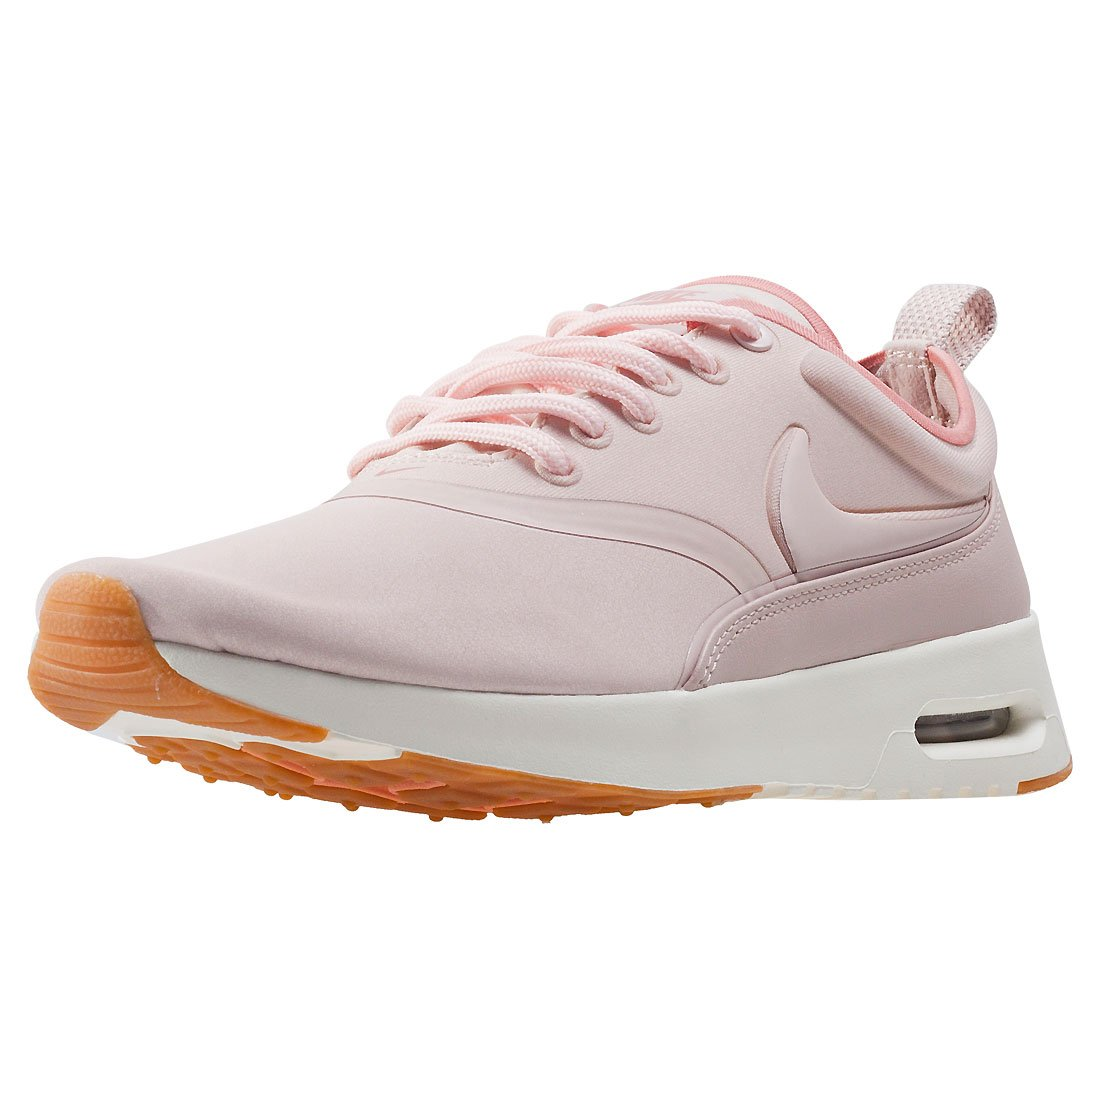 Nike Damen Air Max Thea Ultra Premium Turnschuhe 41